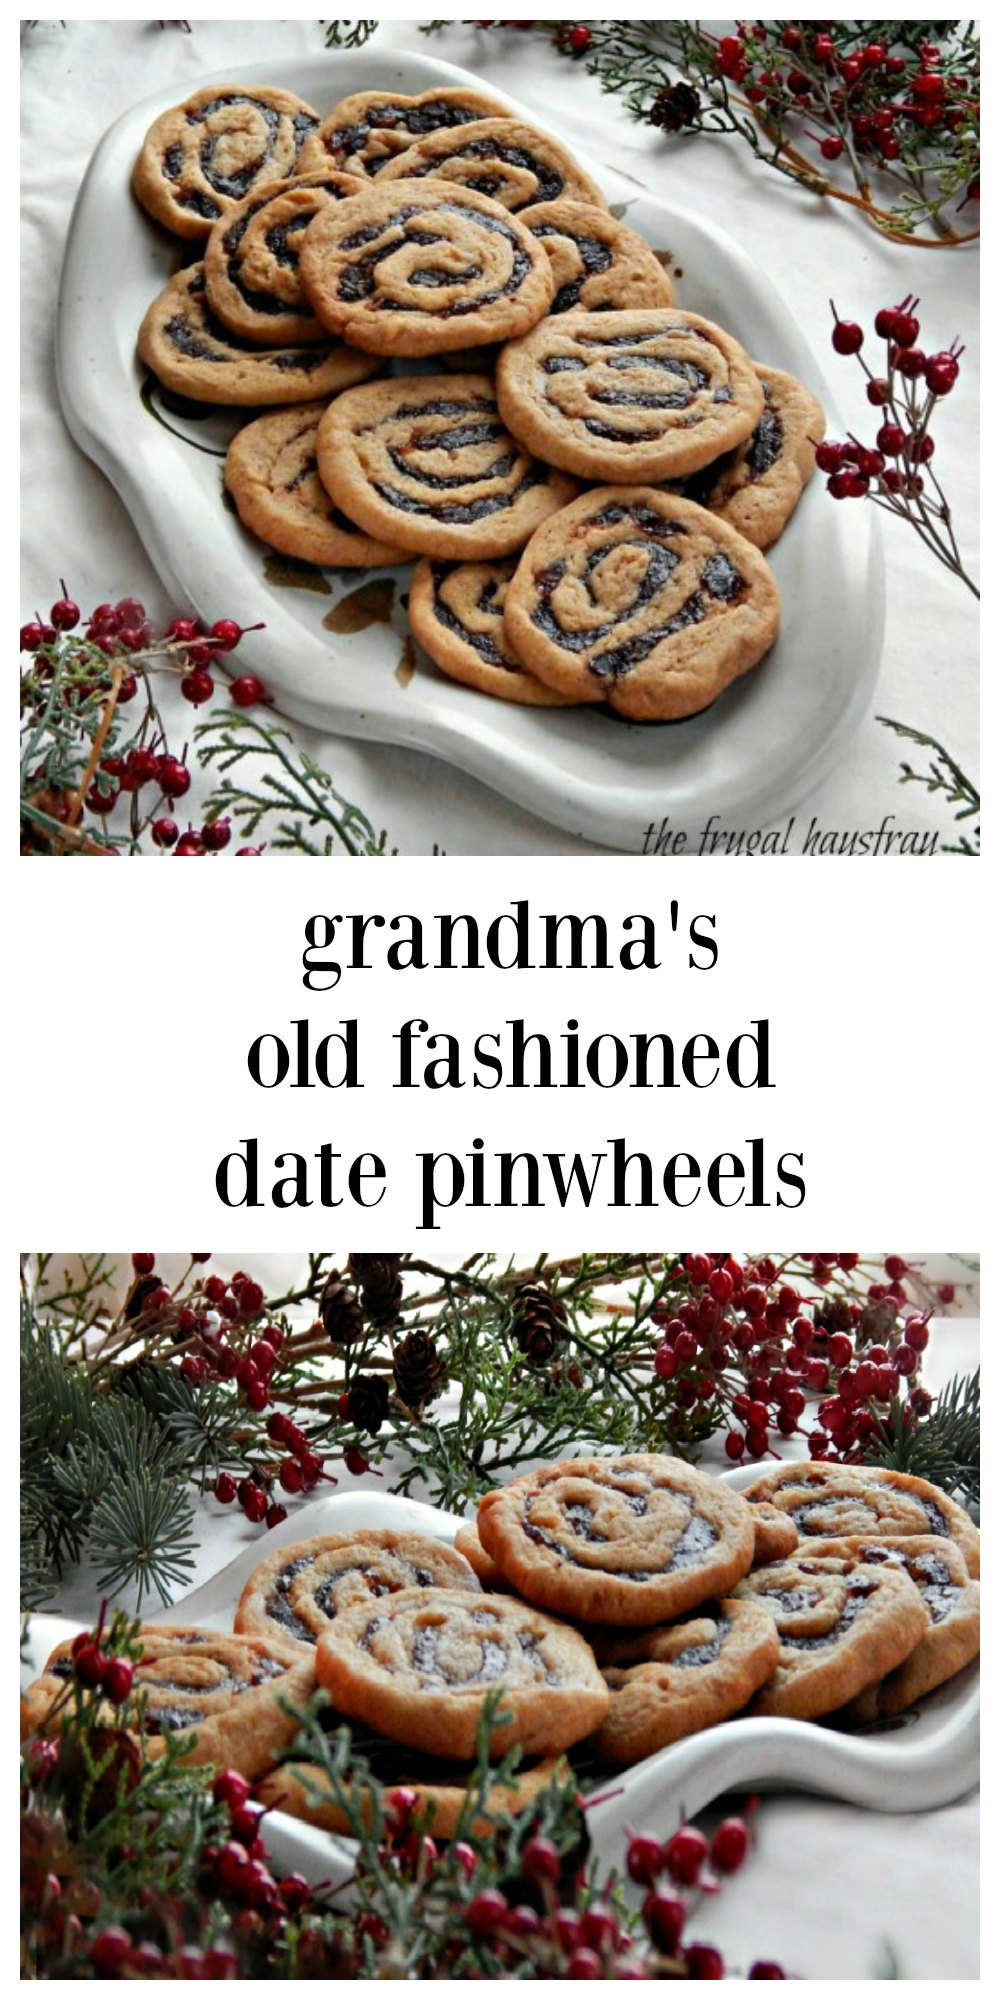 Grandmas Cookies are always the best & stand the test of time! Old Fashioned Date Pinwheels are crispy on the edges still have that great chewiness. Best of both worlds! These are make-ahead icebox cookies. Roll them into logs, refrigerate and slice and bake when you need them. A log keeps several days in the fridge and can be frozen. Just think, freshly-baked no effort cookies whenever you need them! #Pinwheels #DatePinwheels #OldFashionedPinwheels #IceboxCookies #IceboxDatePinwheels #SliceAndBakeCookies